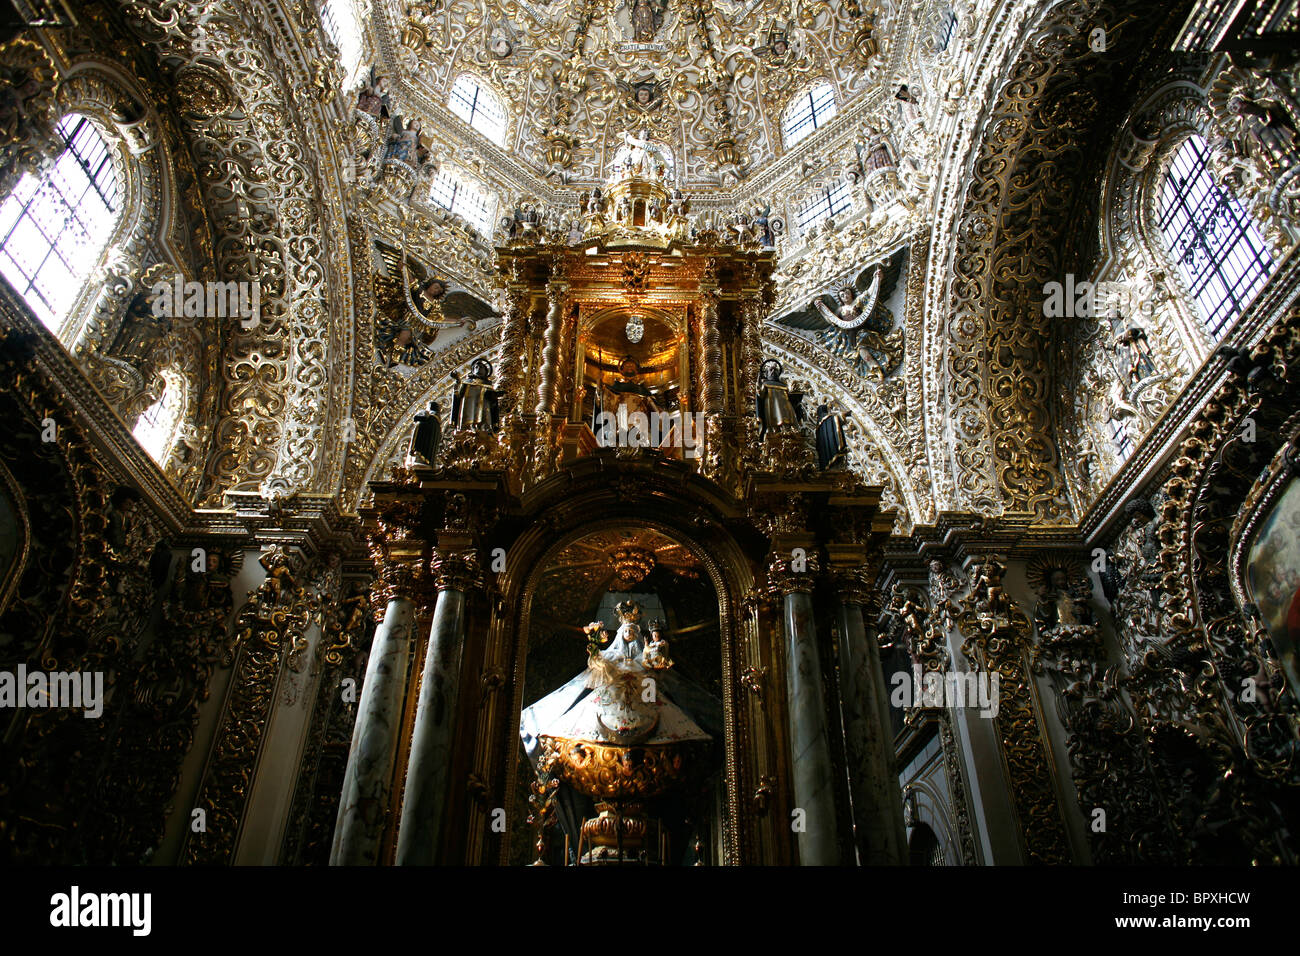 A chapel of a church, August 20, 2007, in Puebla de Zaragoza, Mexico. - Stock Image